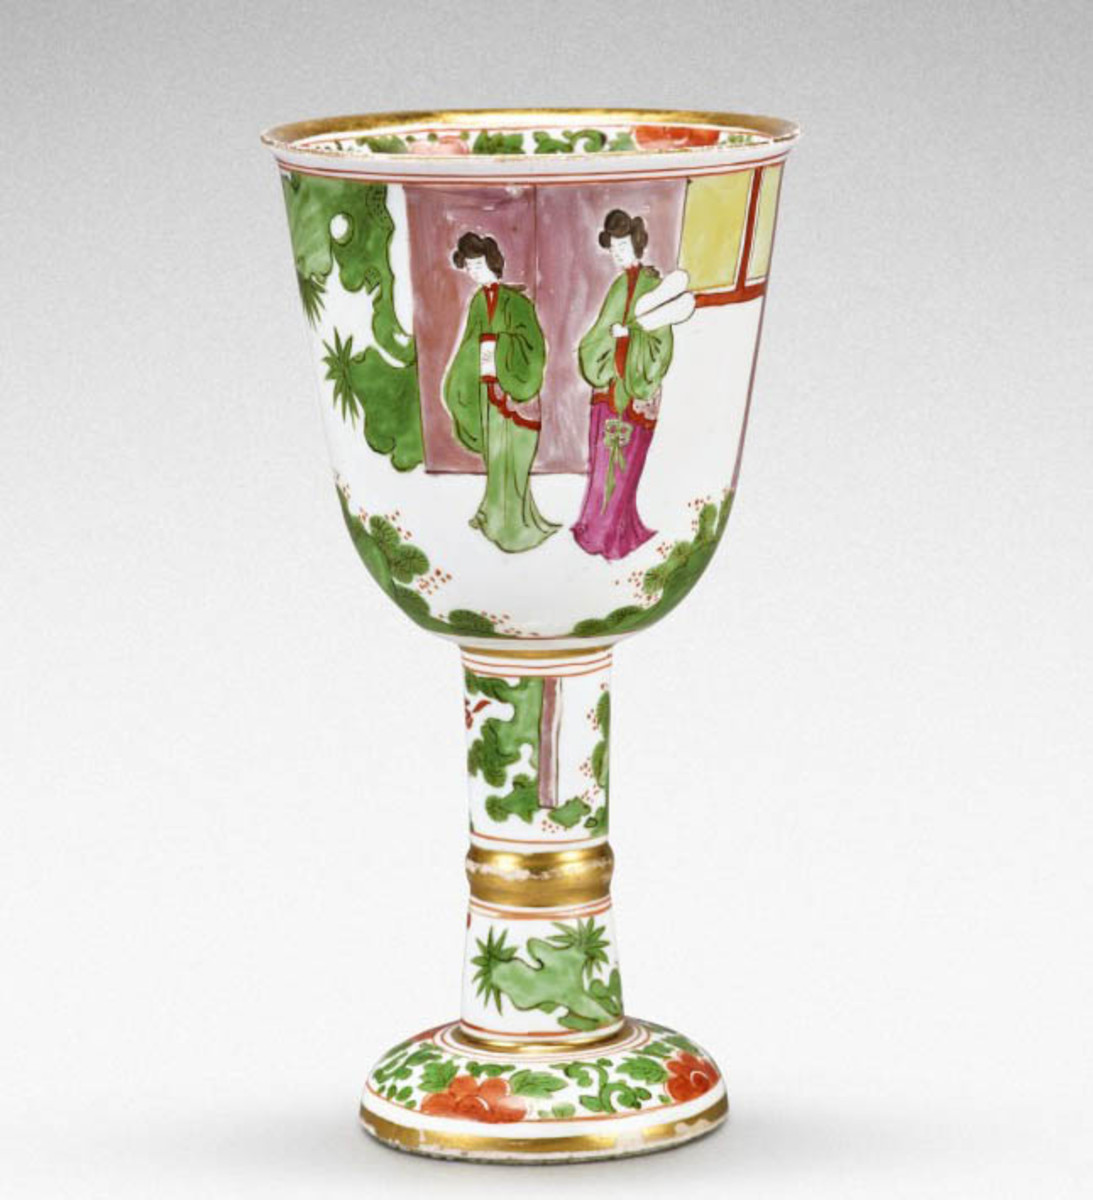 This extremely rare Meissen famille verte goblet, circa 1725, sold for $1.1 million; estimate was $50,000-$70,000.